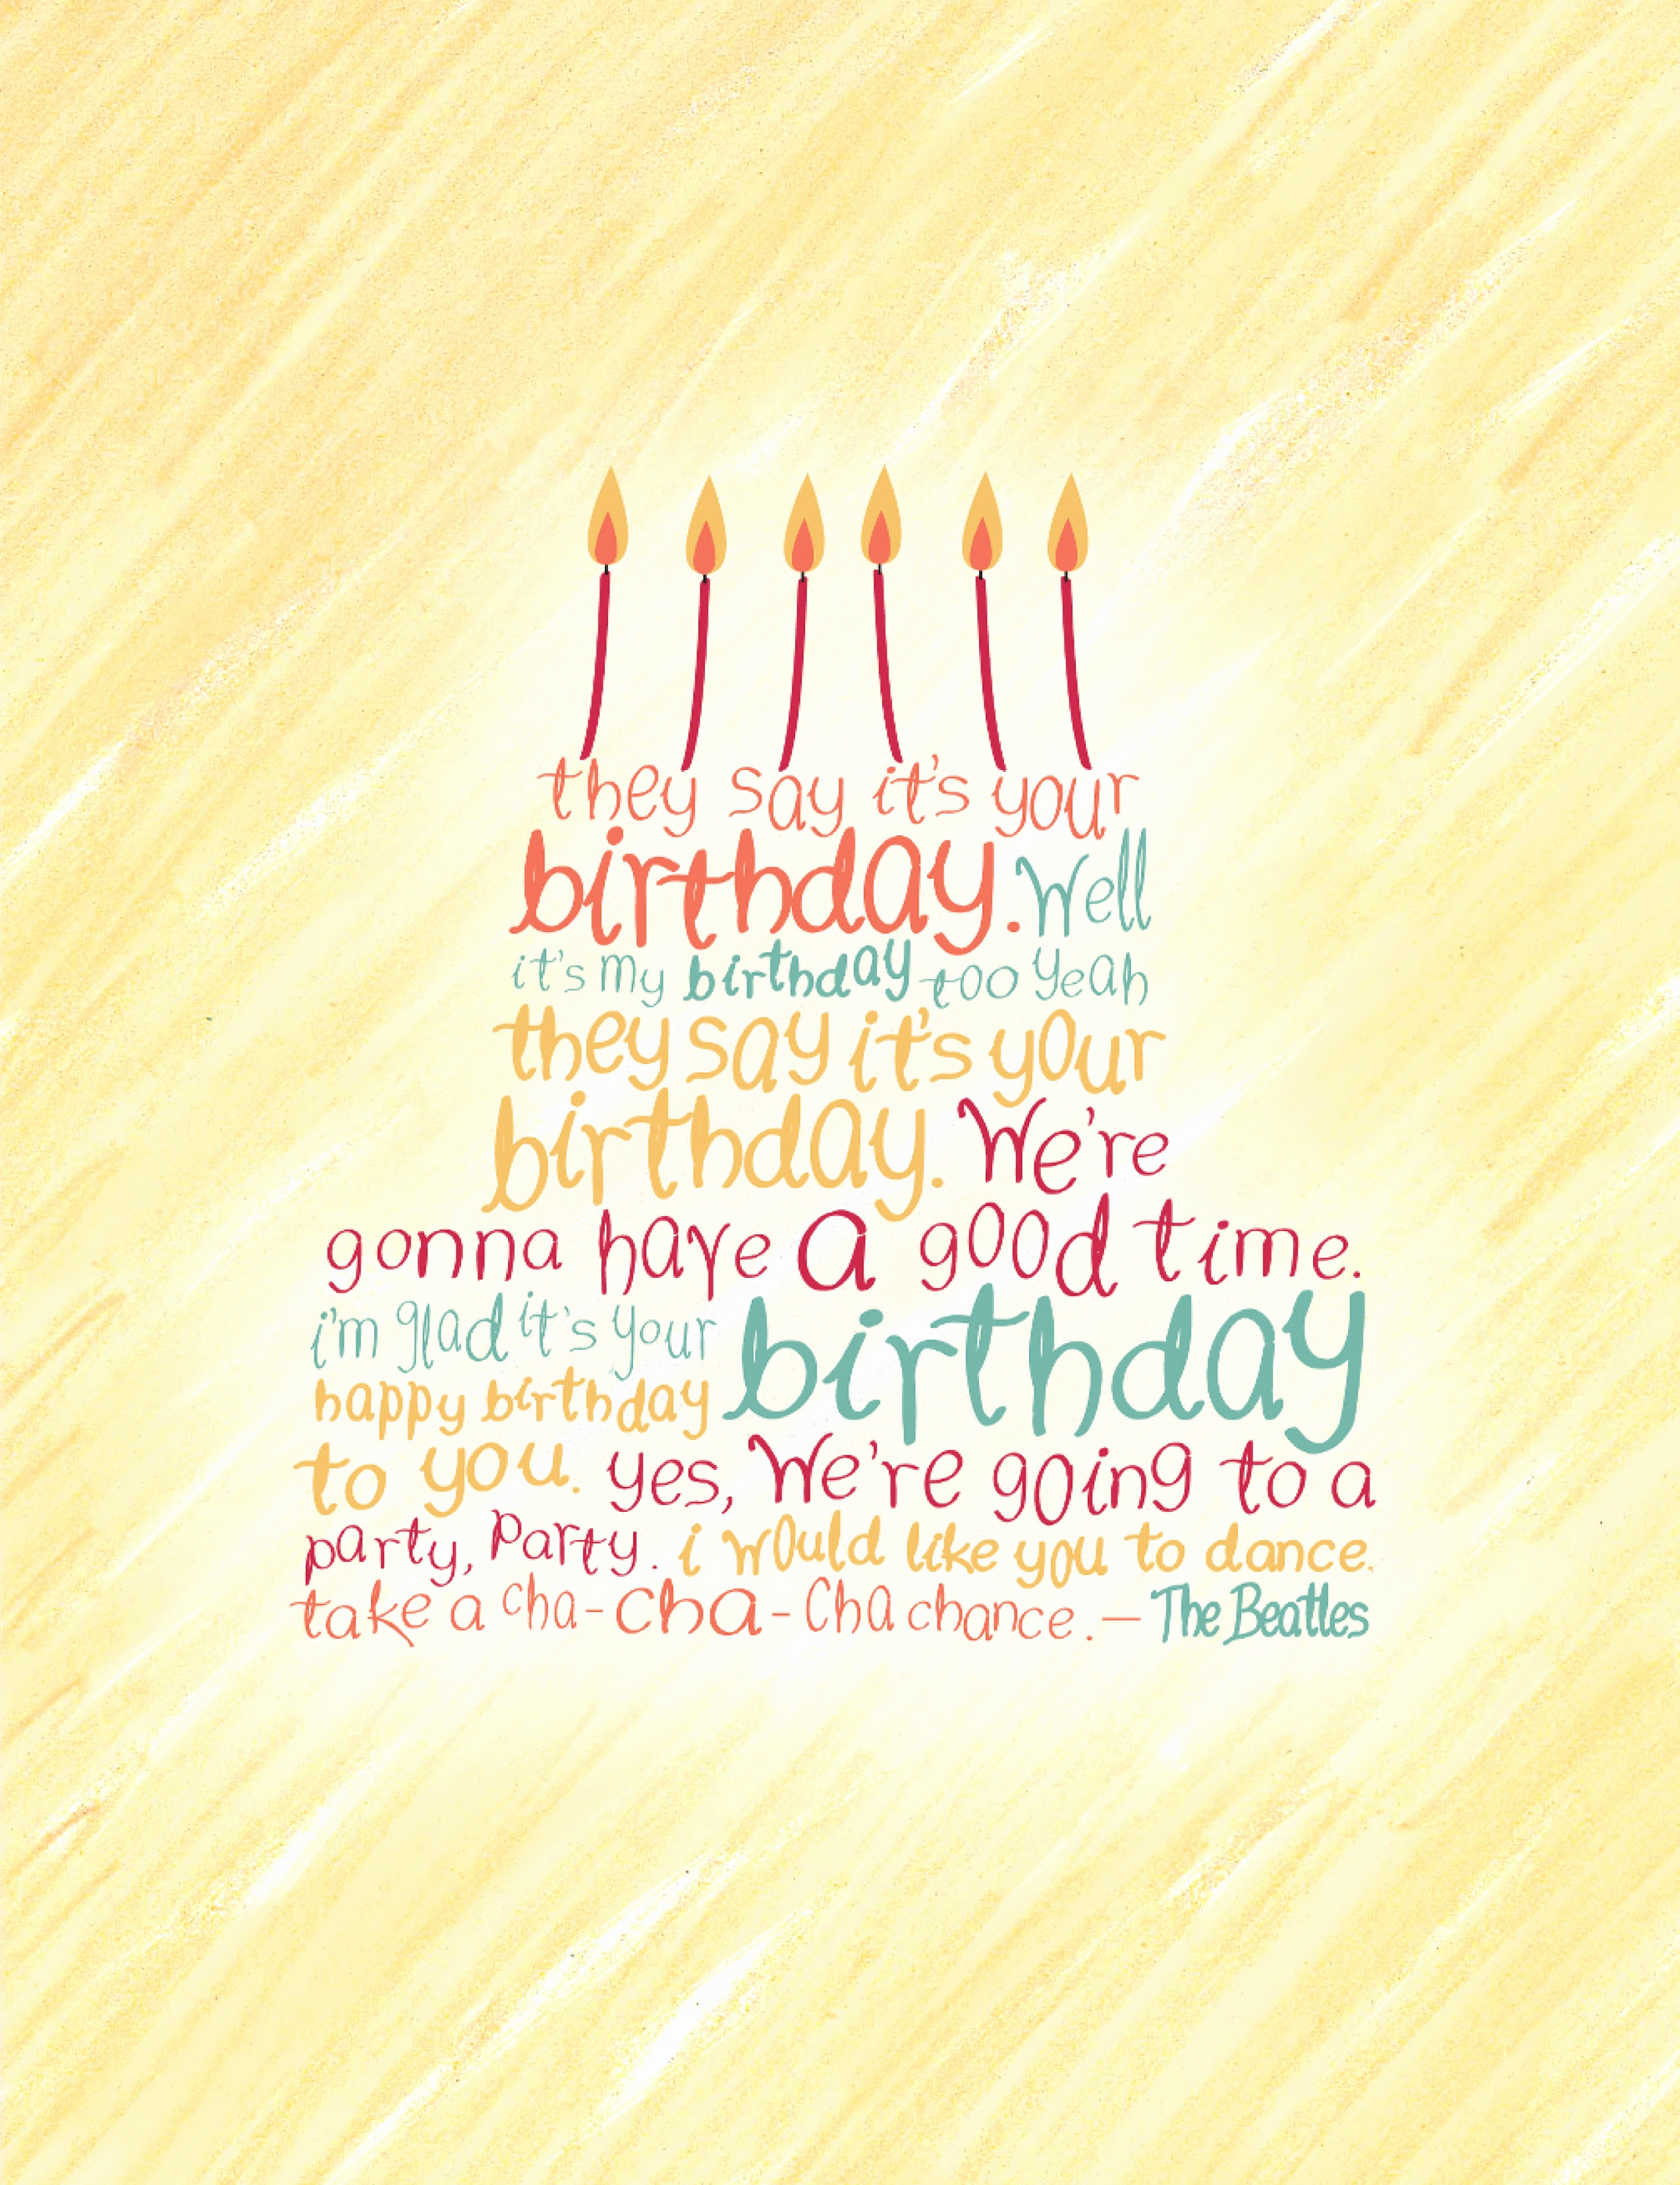 beatles birthday card ; beatles-birthday-card-inspirational-beatles-birthday-card-rachel-huff-of-beatles-birthday-card